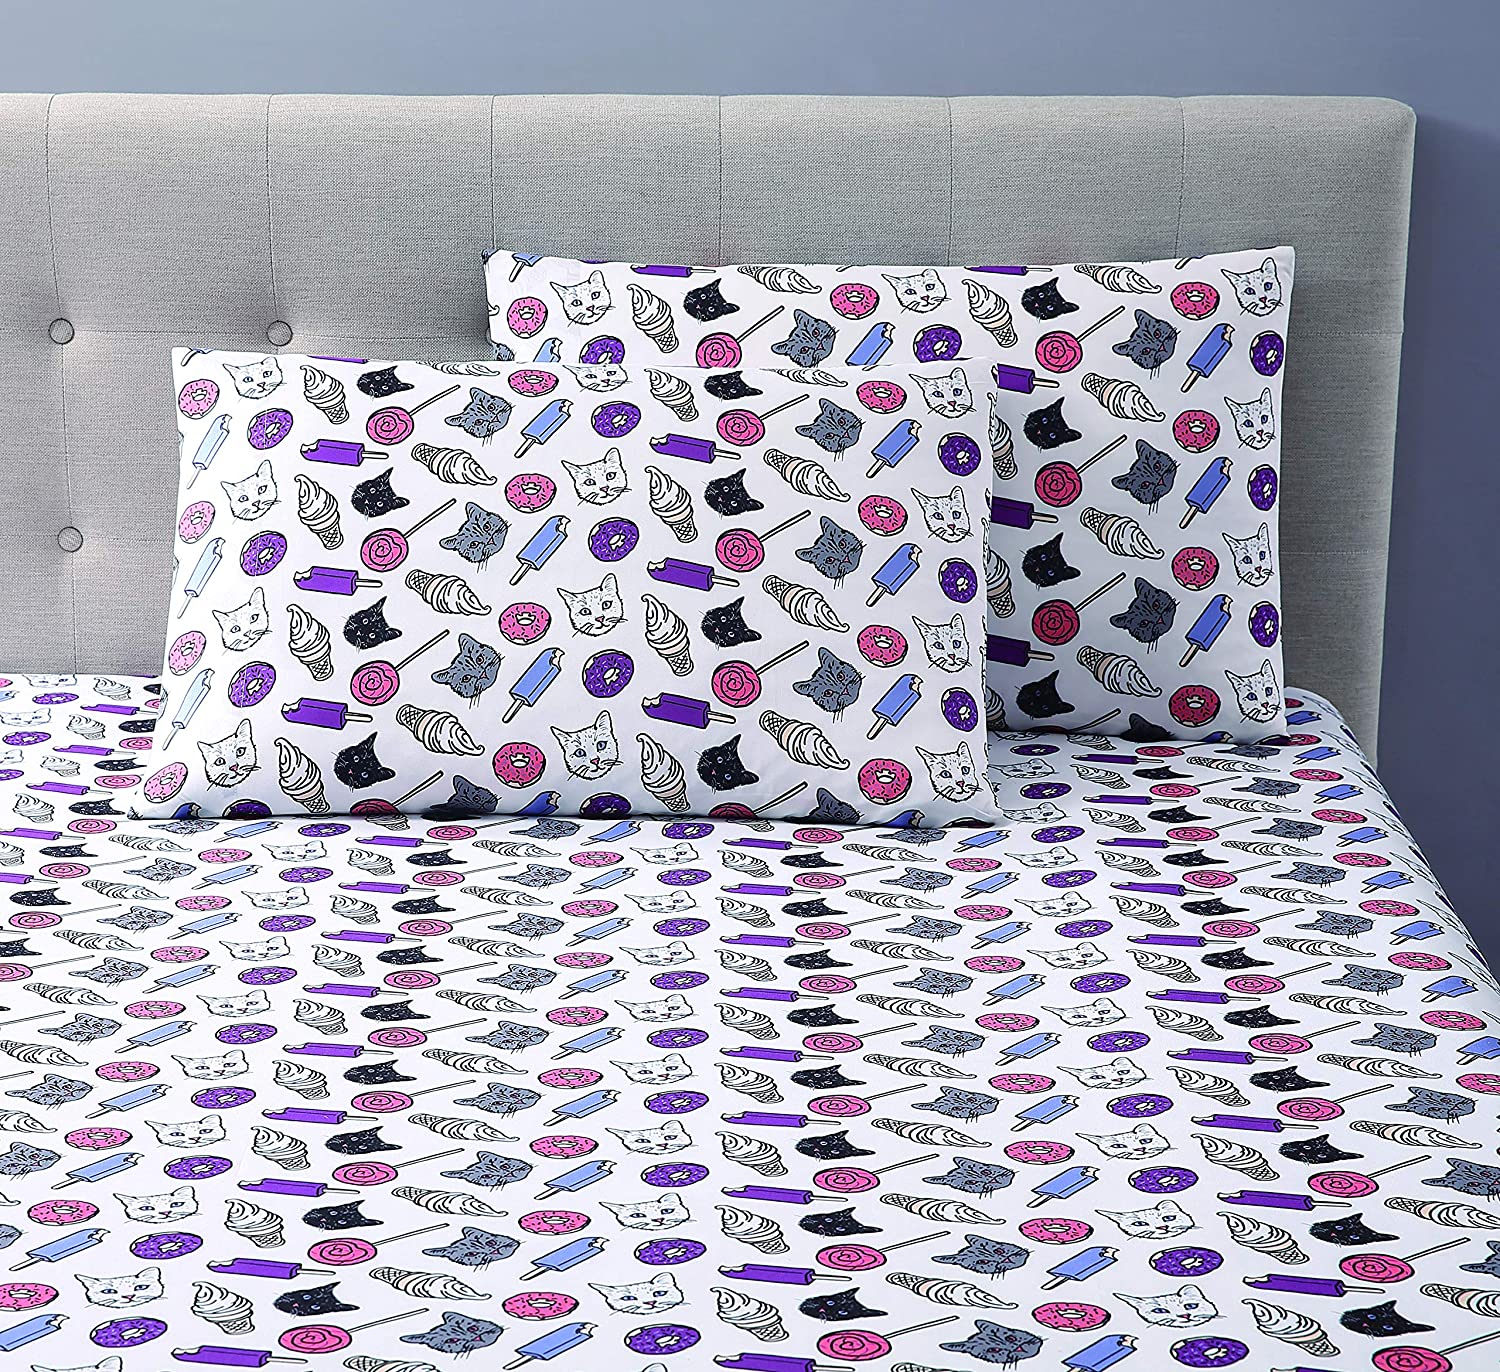 OH, HELLO, Bed, Cats & Junkfood, 2 Pc, Twin XL Sheet Set